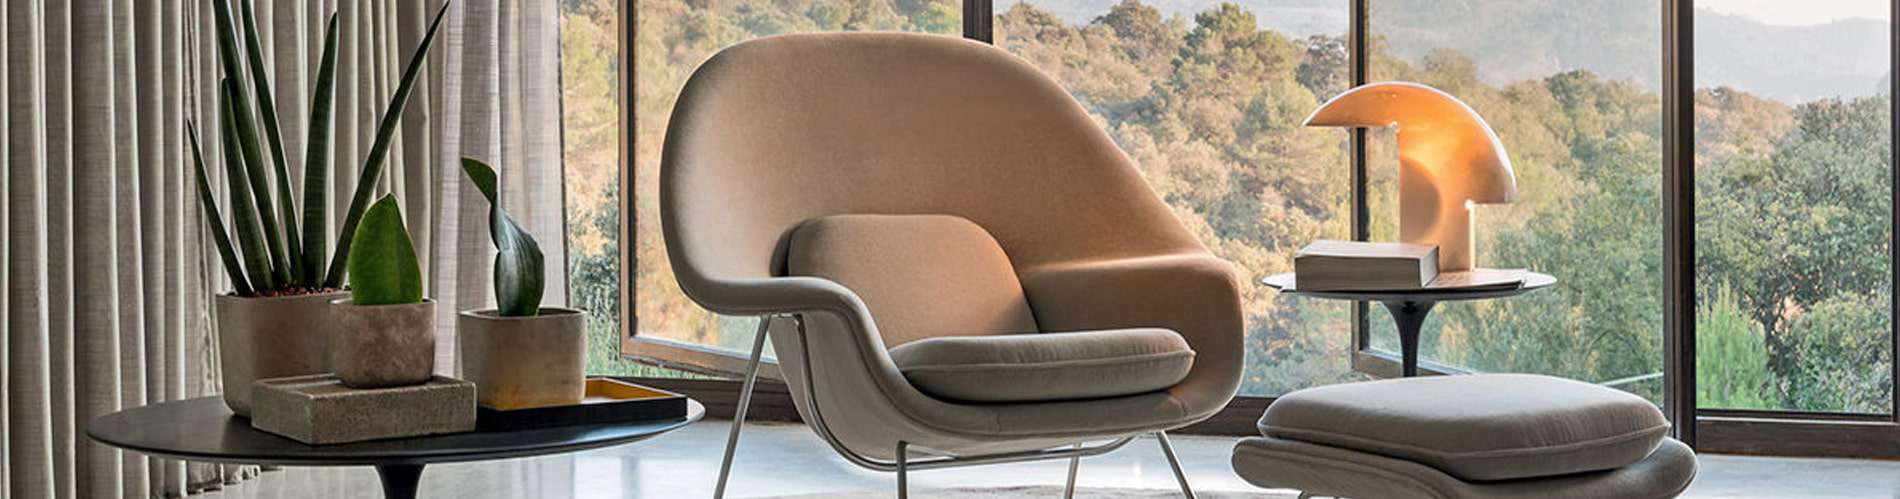 womb chair landing page banner   byBespoek